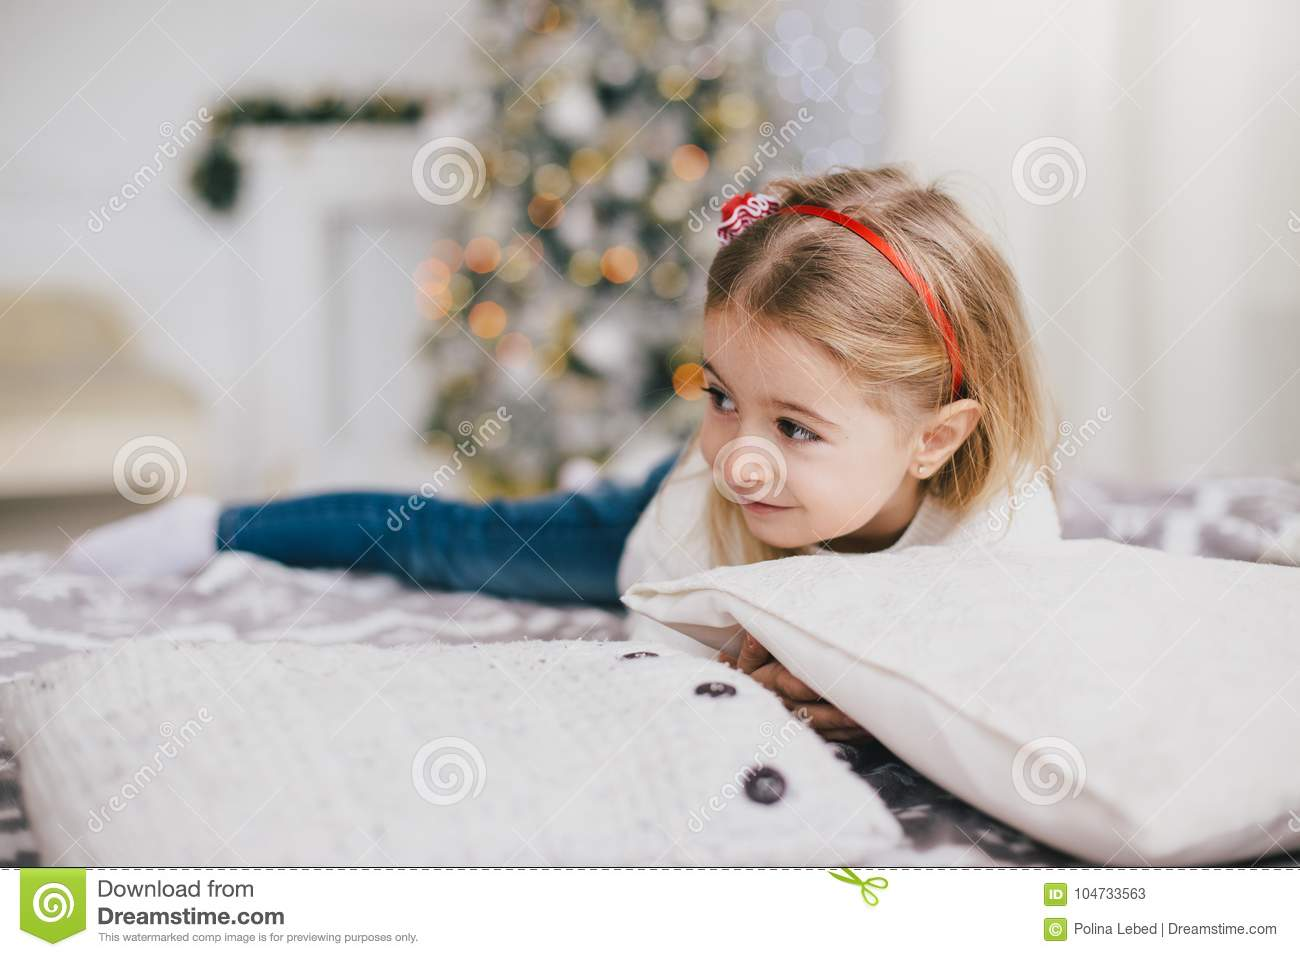 Happy Little Girl In A White Sweater And Blue Jeans Posing Near